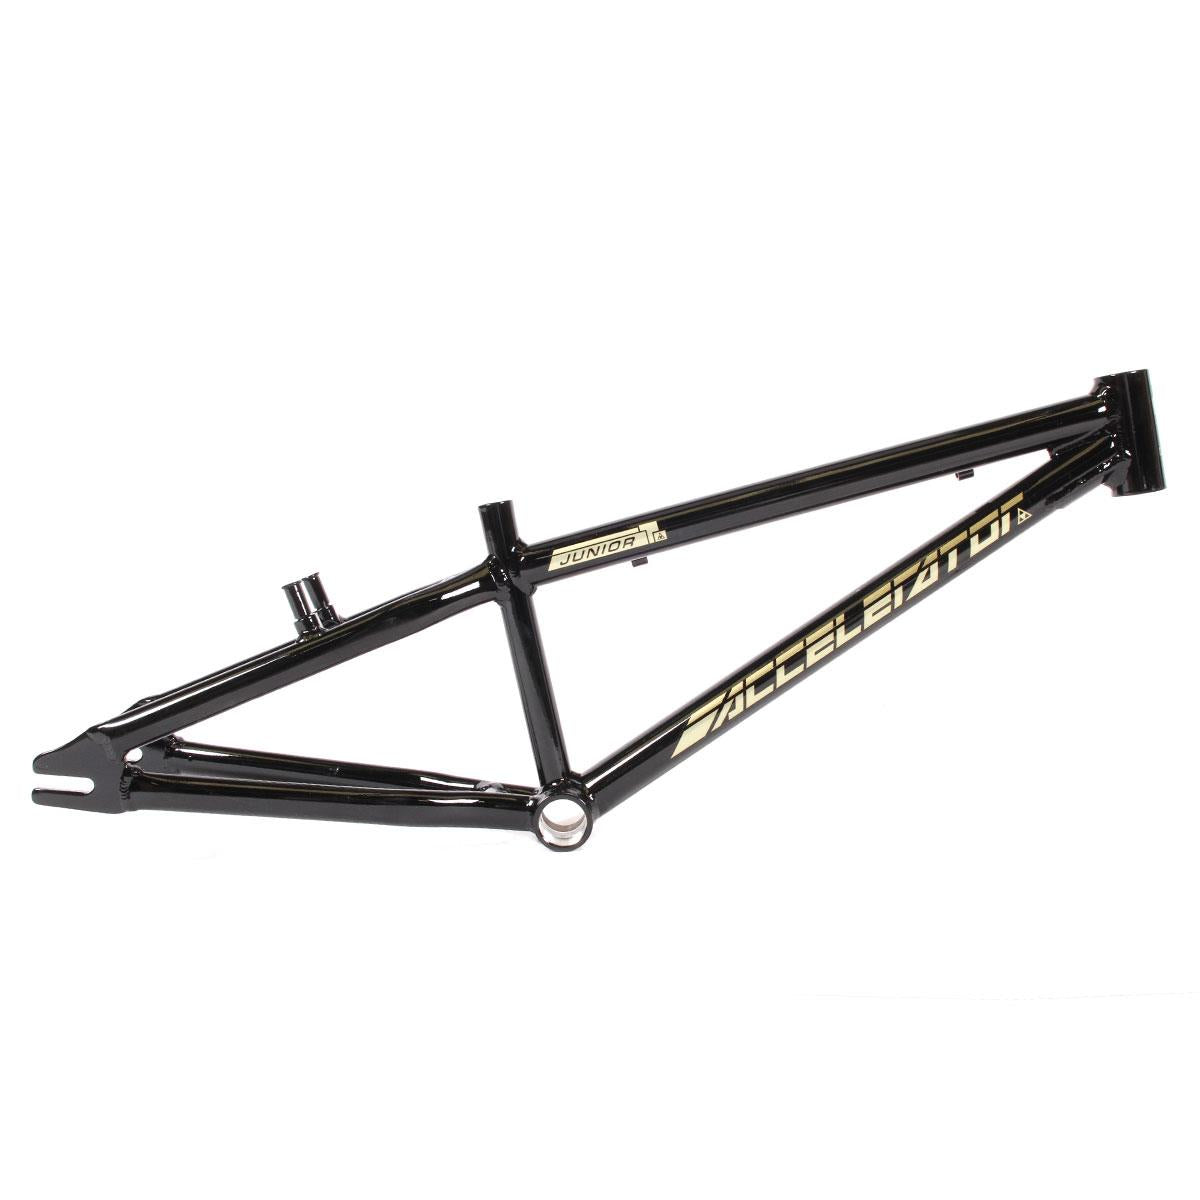 Jet BMX Accelerate Junior Race Frame